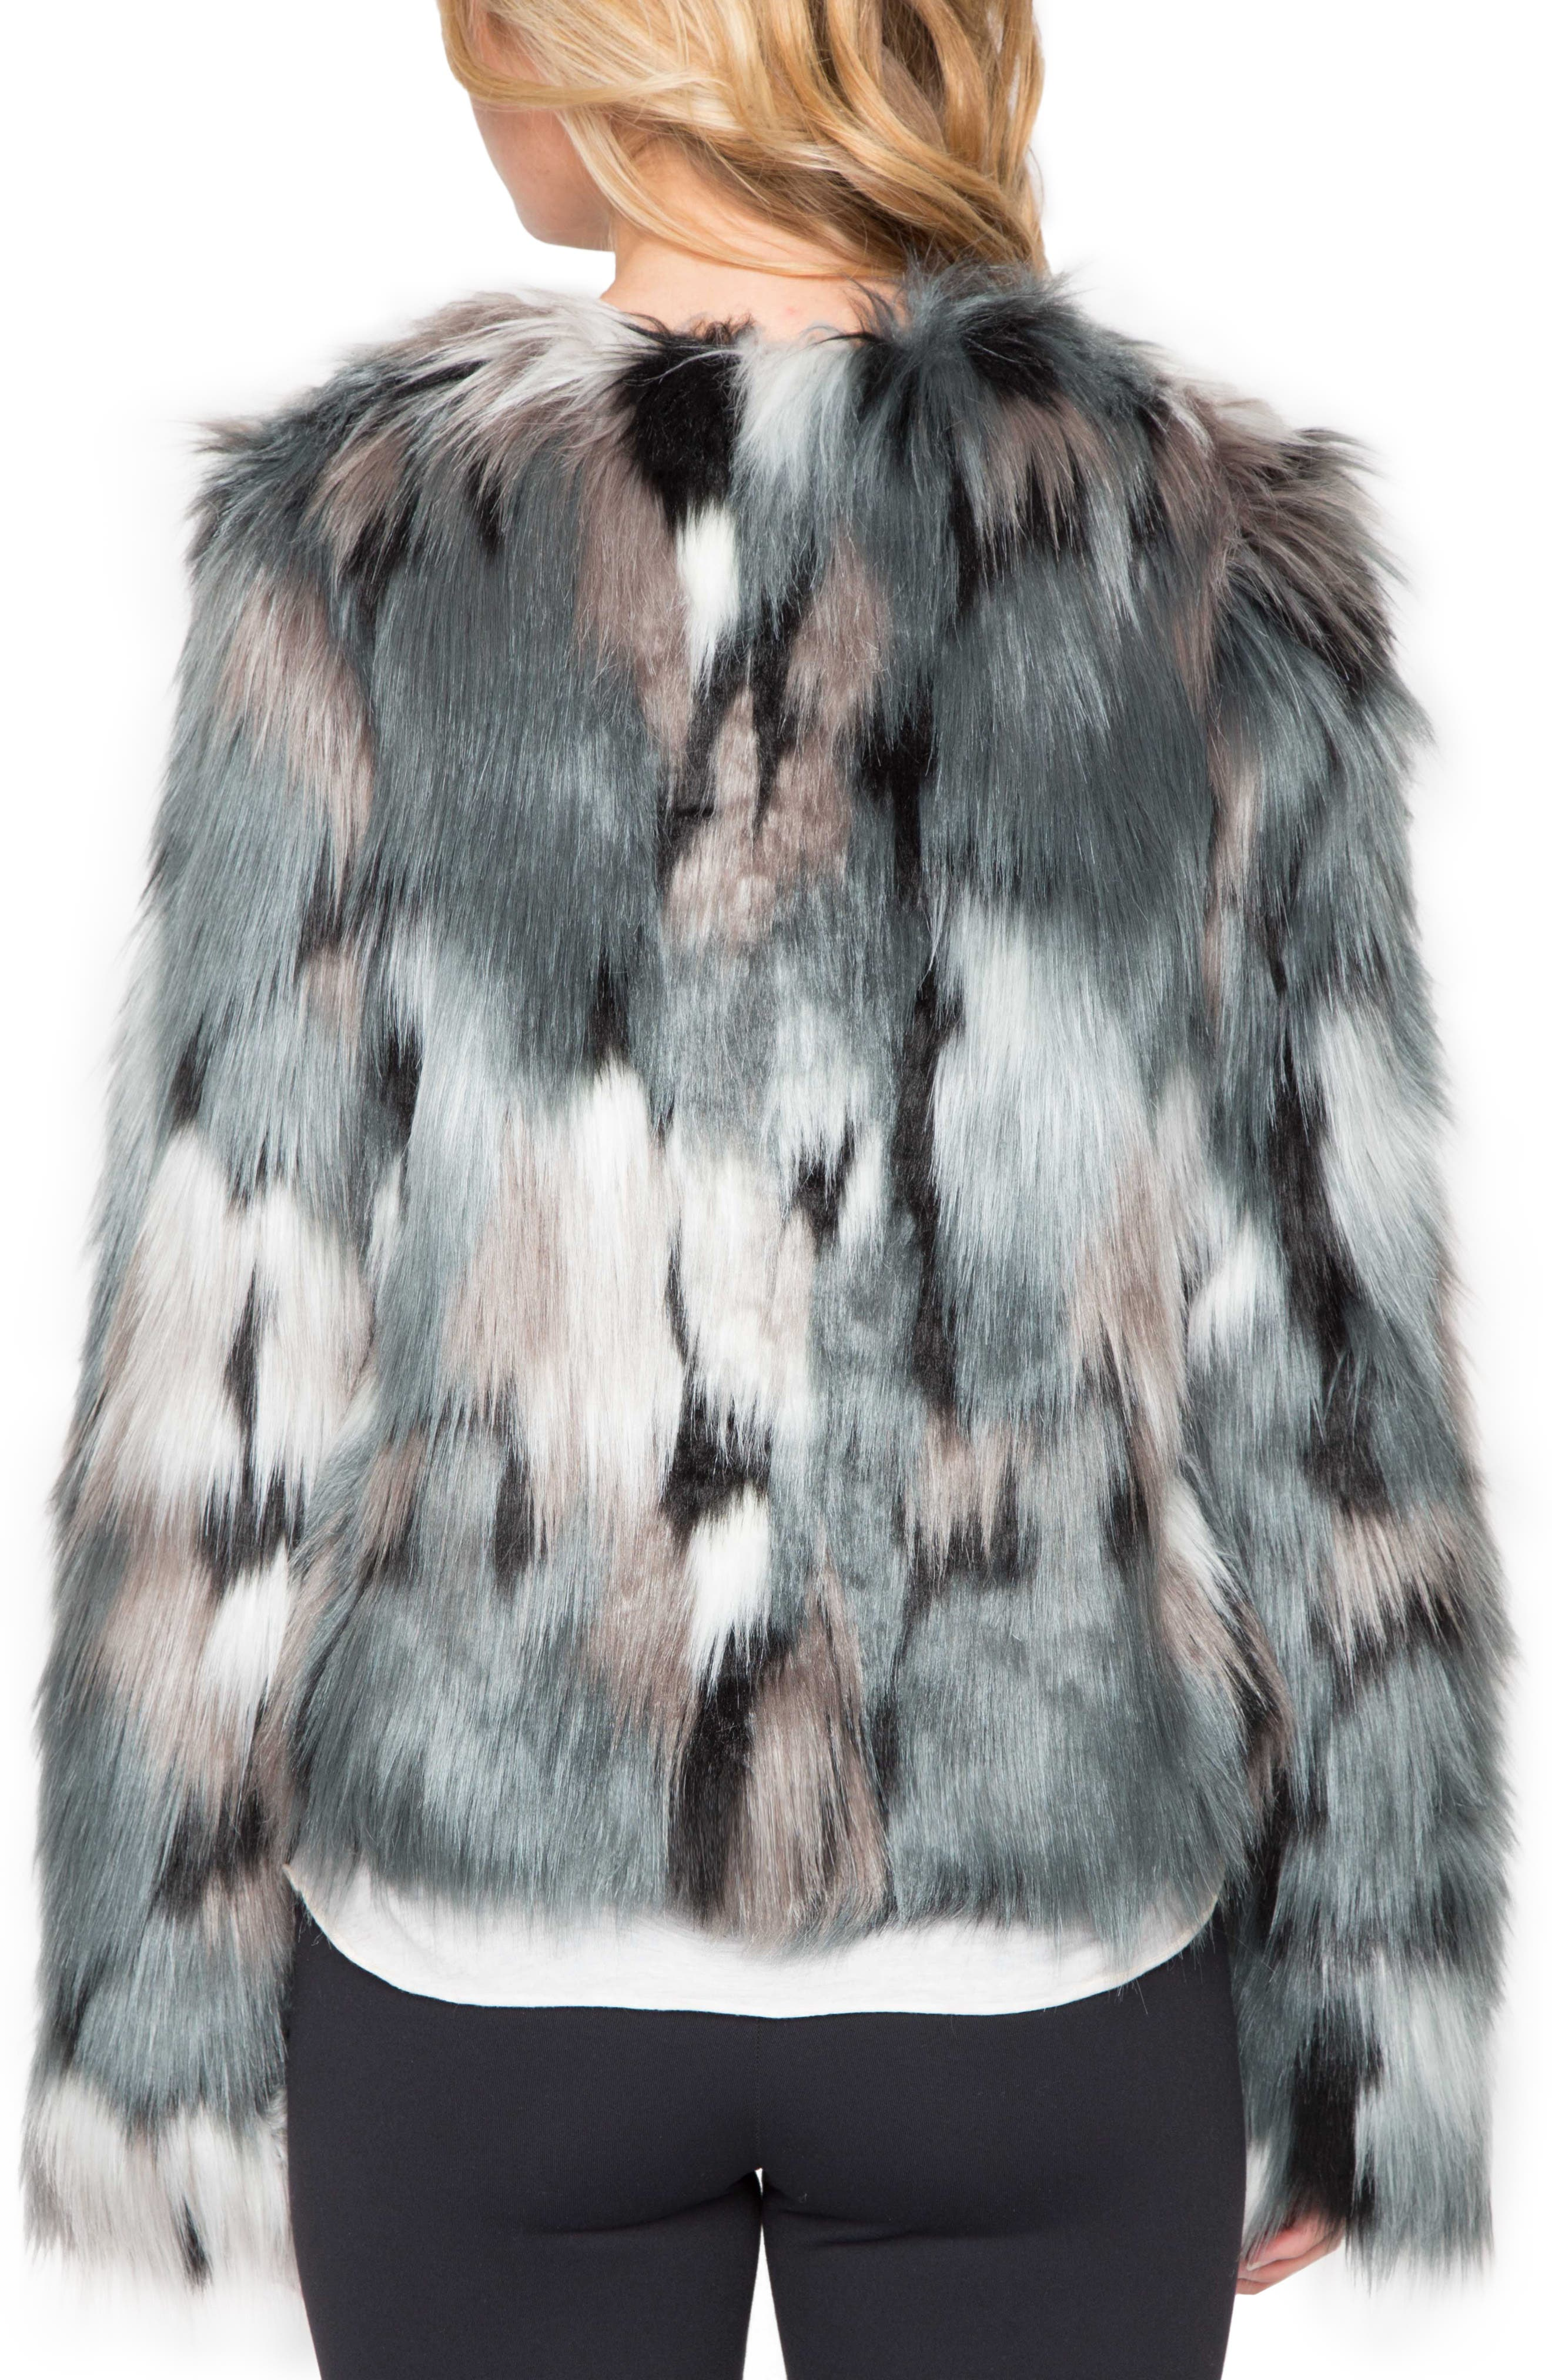 WILLOW & CLAY, Faux Fur Jacket, Alternate thumbnail 2, color, 445